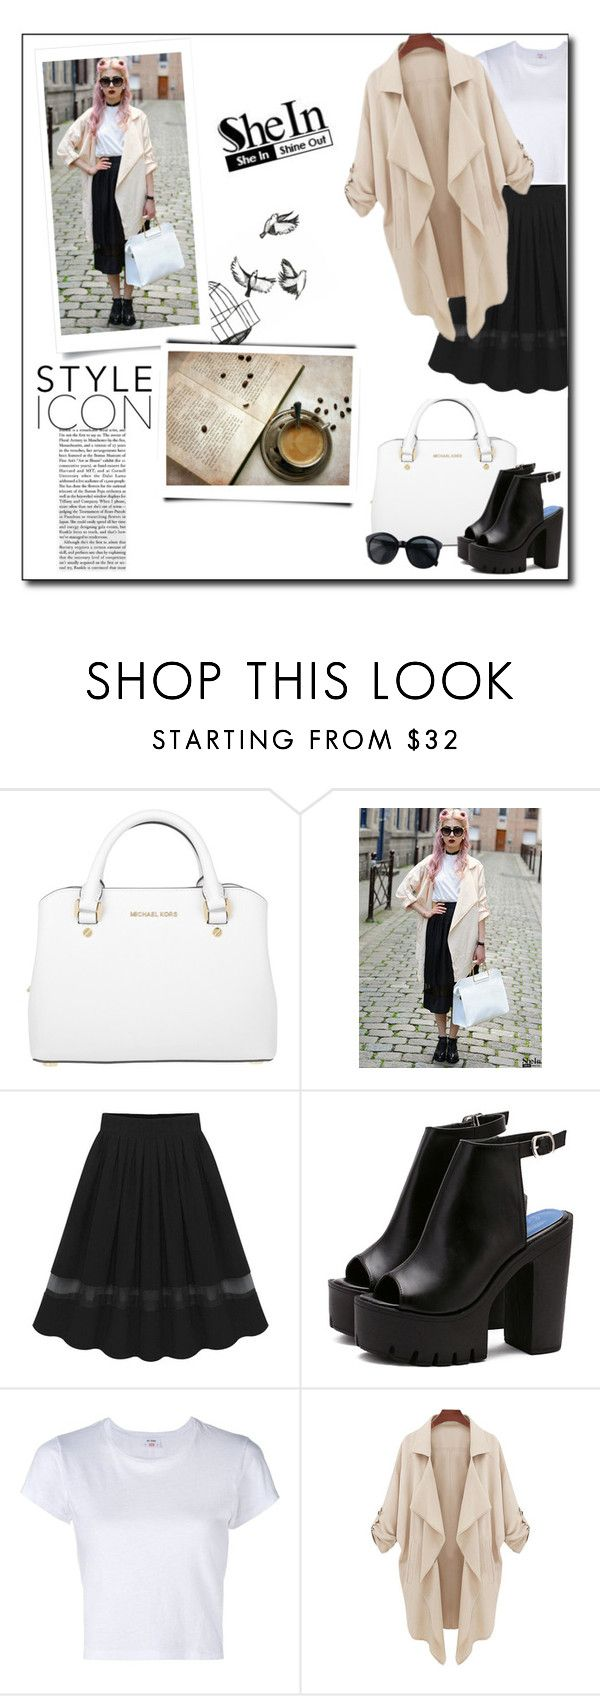 """SheIn 3/3"" by smajicelma ❤ liked on Polyvore featuring Michael Kors, RE/DONE and daria"